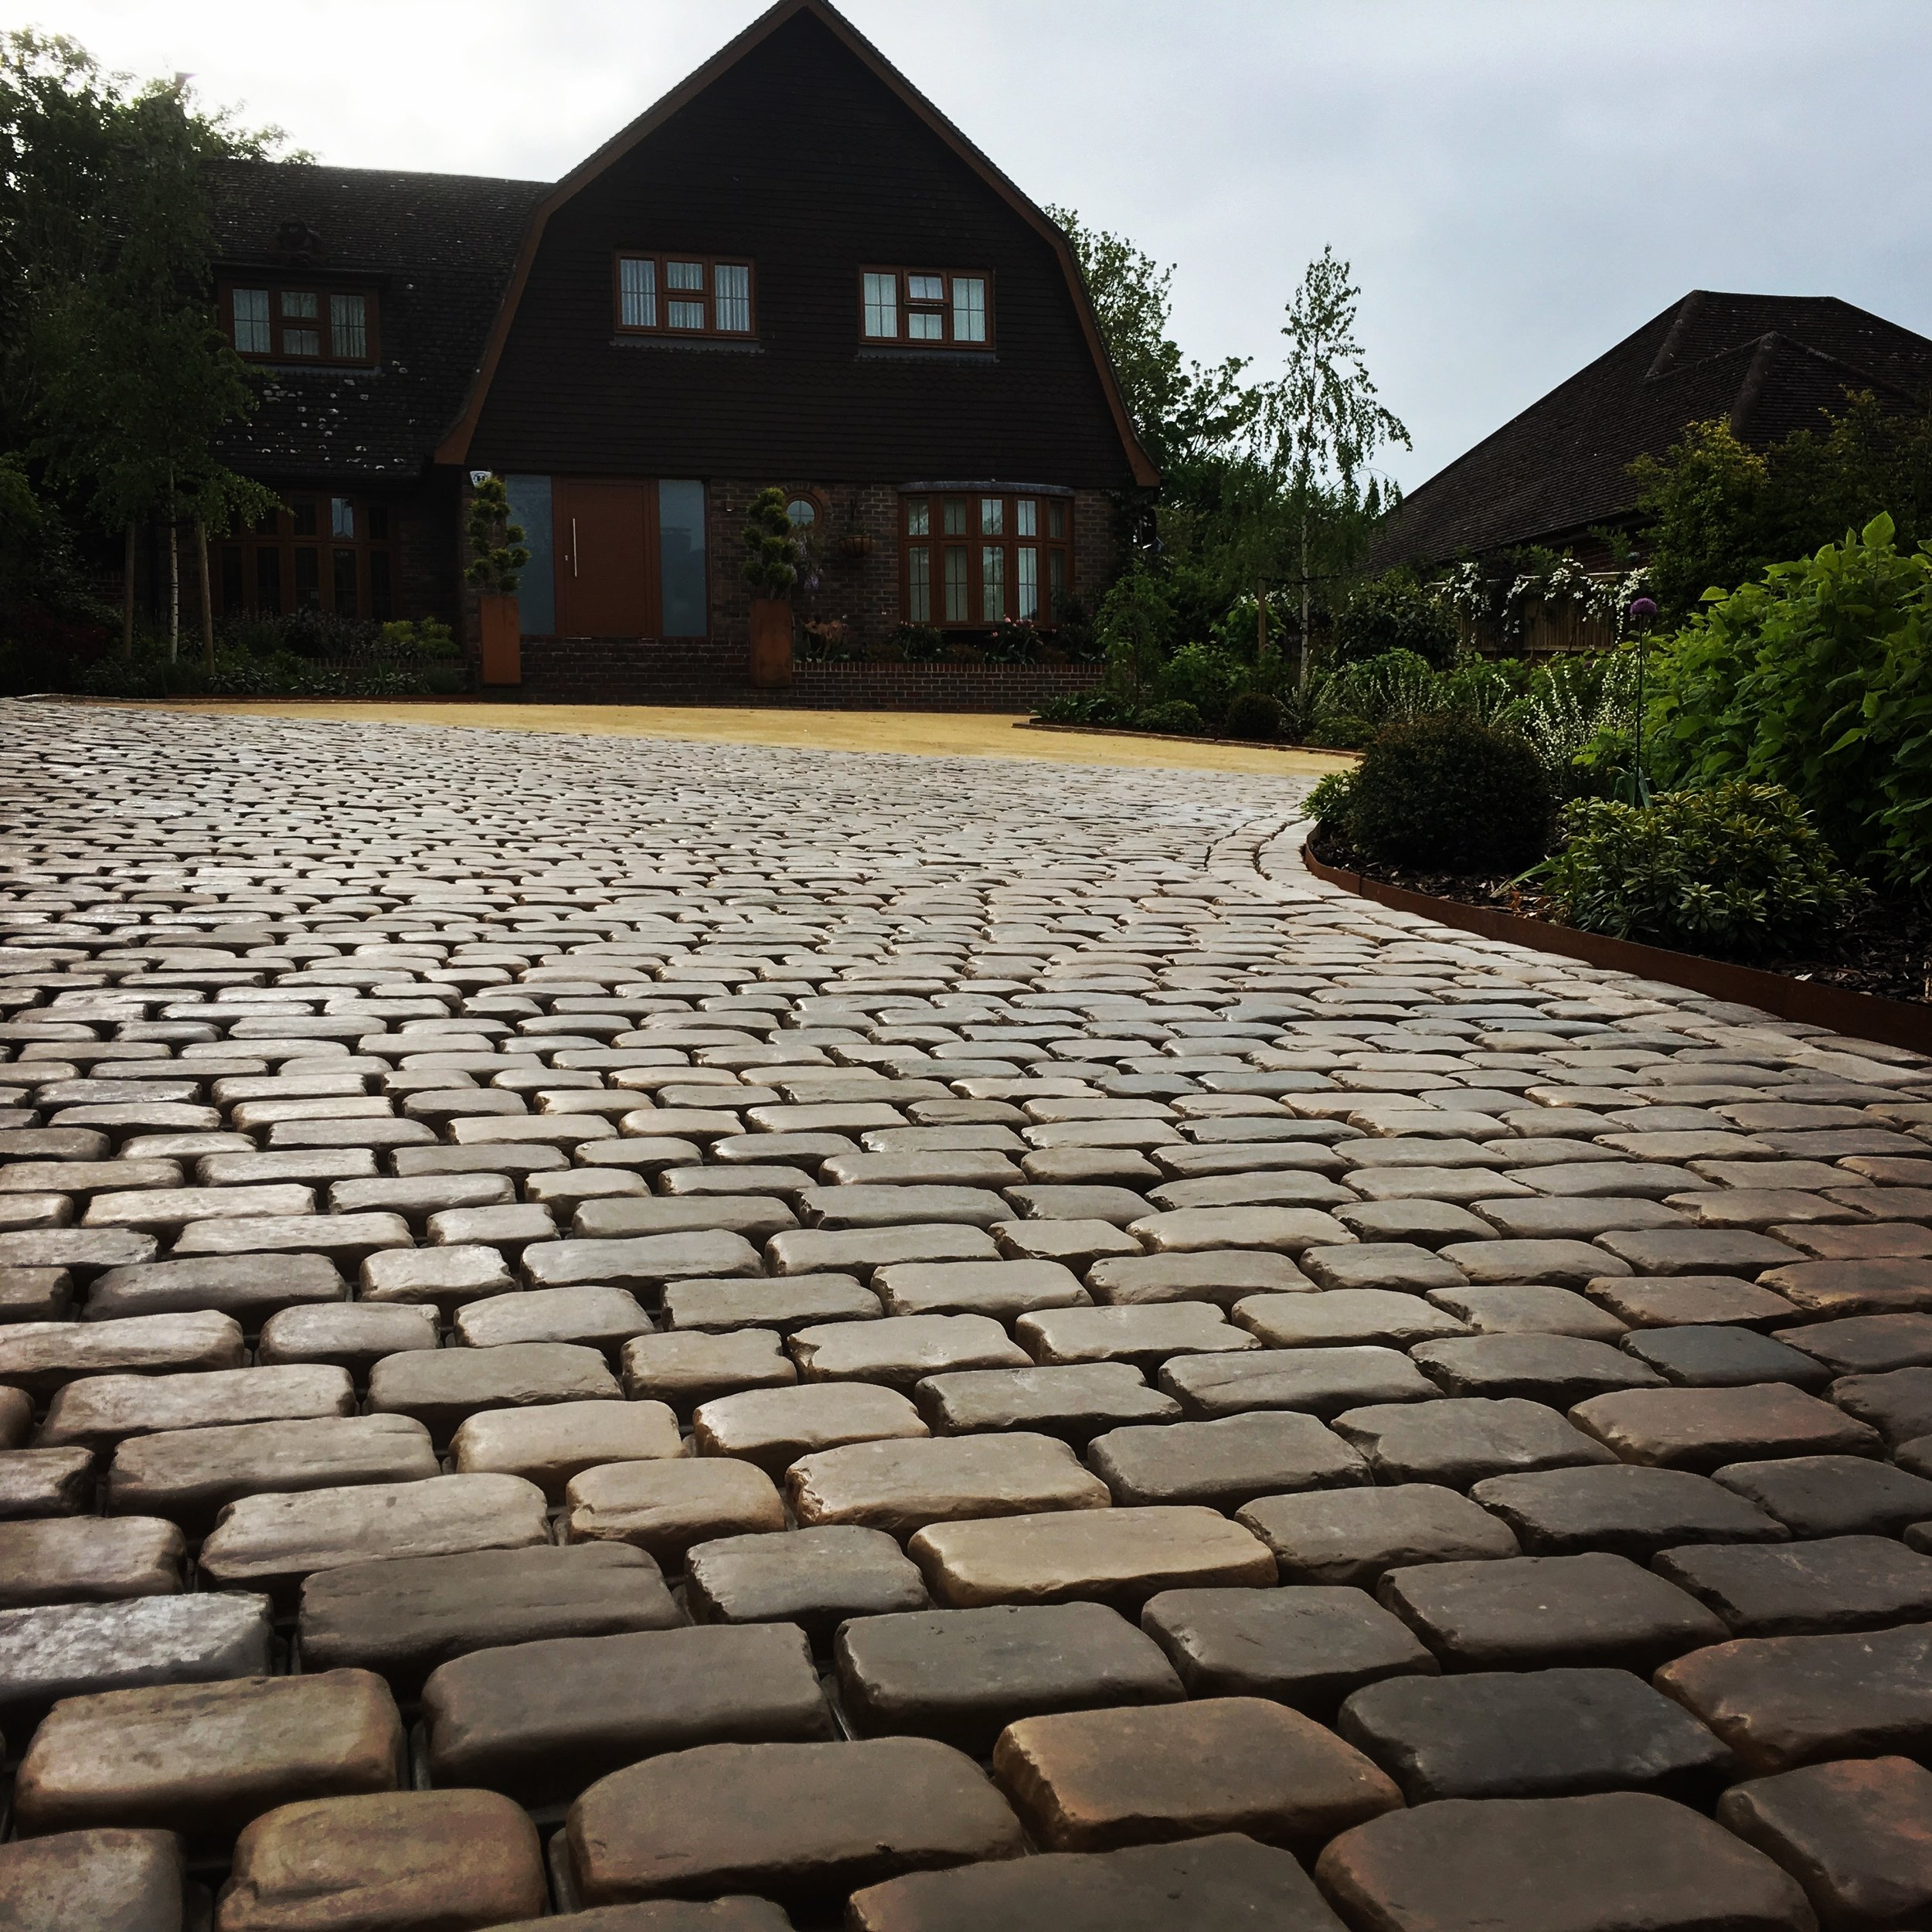 This driveway in Havant Hampshire was laid using the Marshalls Drivsys block, an absolute stunning driveway